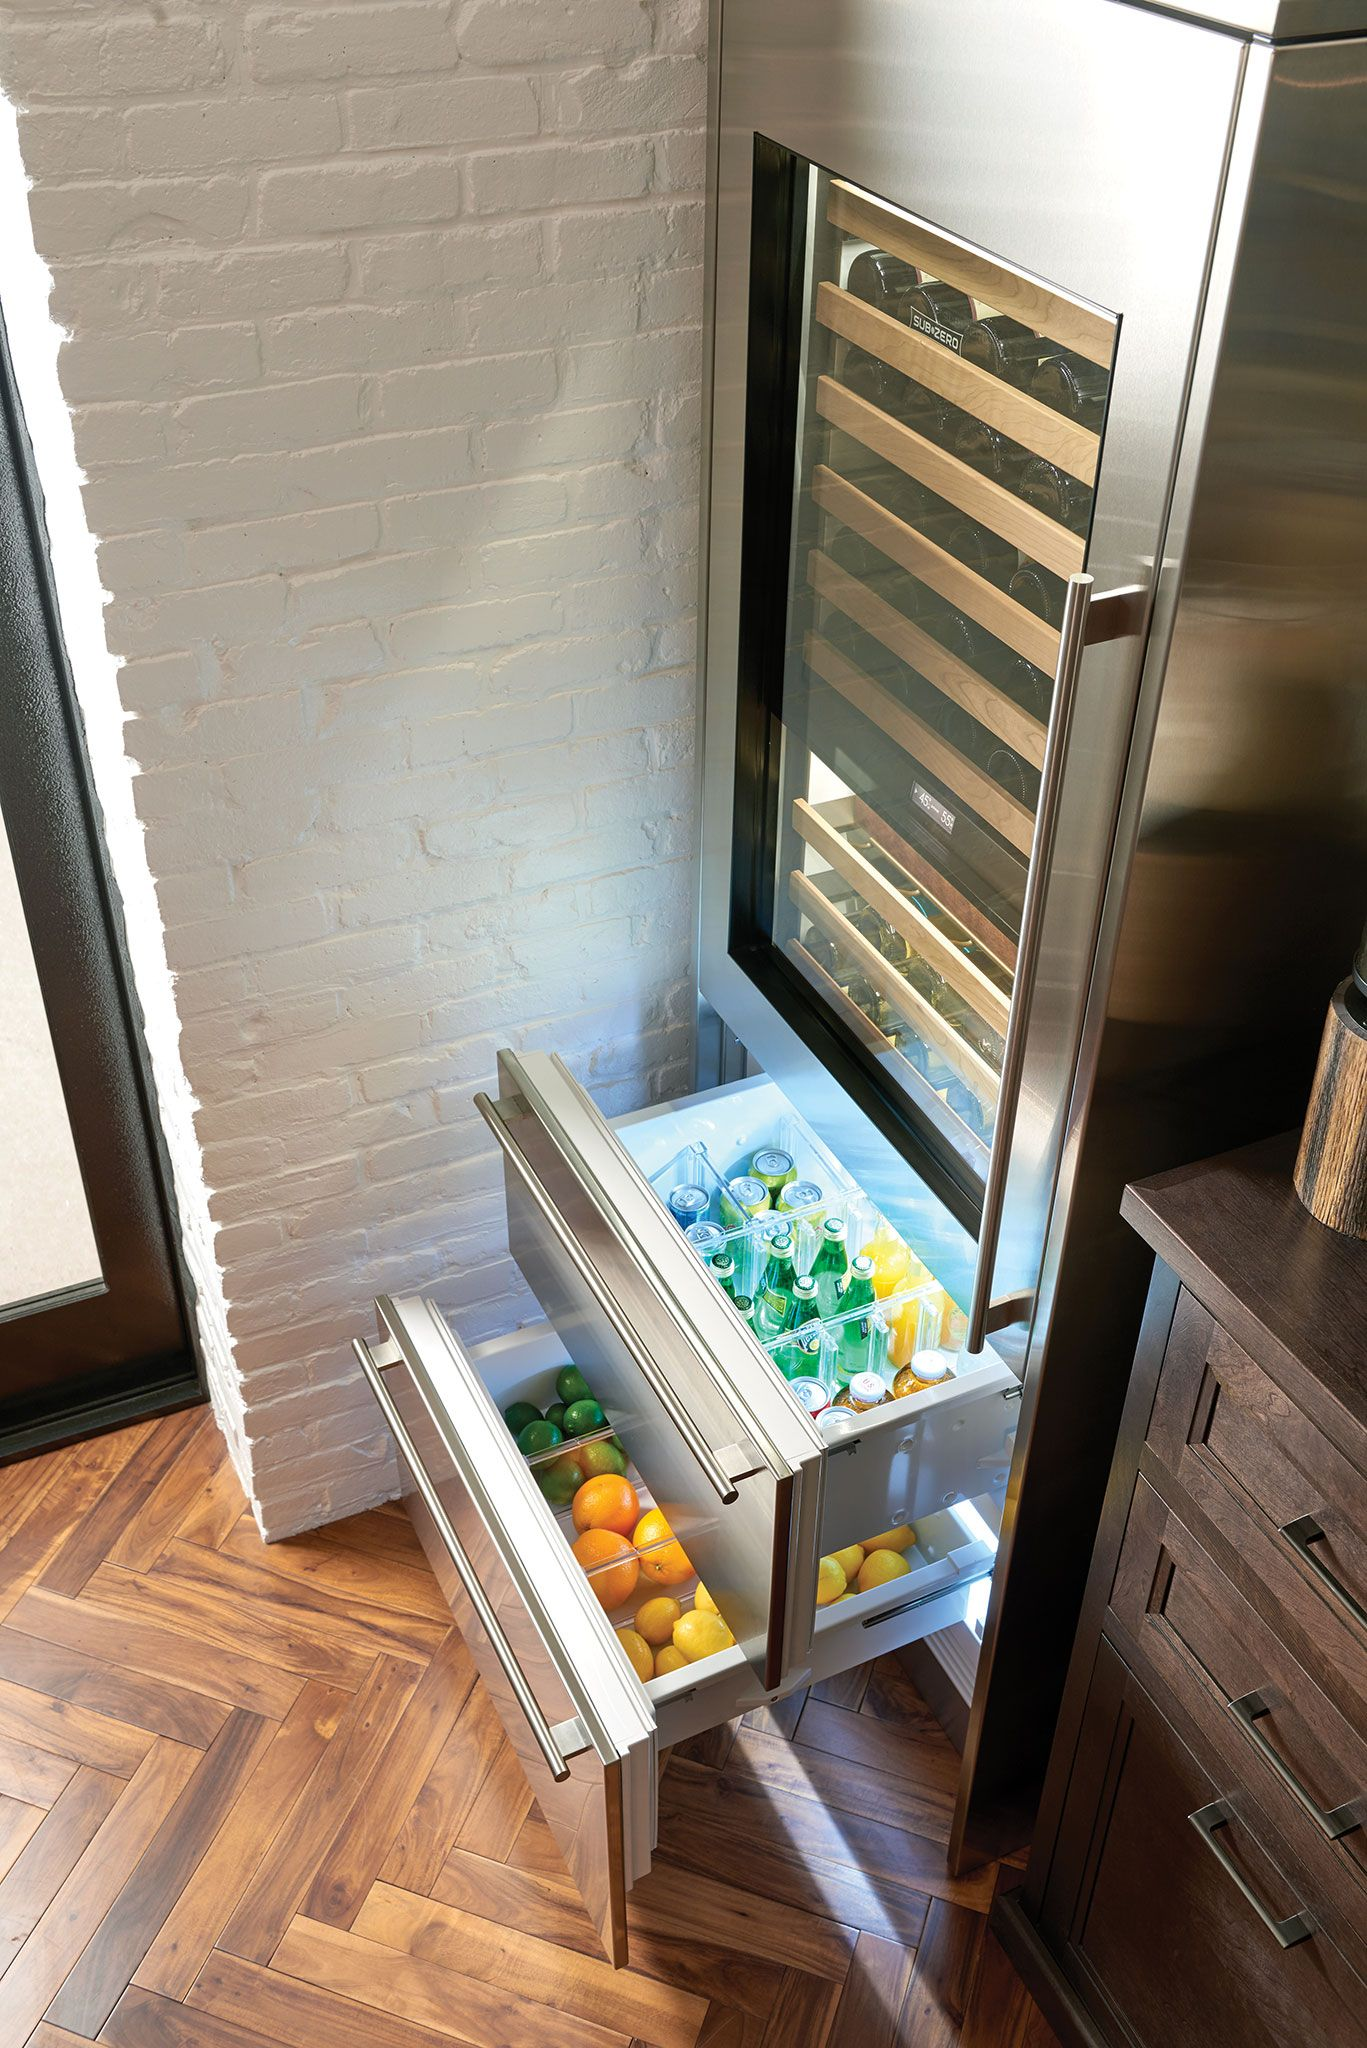 Sub Zero 30 Designer Wine Storage Refrigerator Drawers Panel Ready Wine Storage Sub Zero Refrigerator Drawers